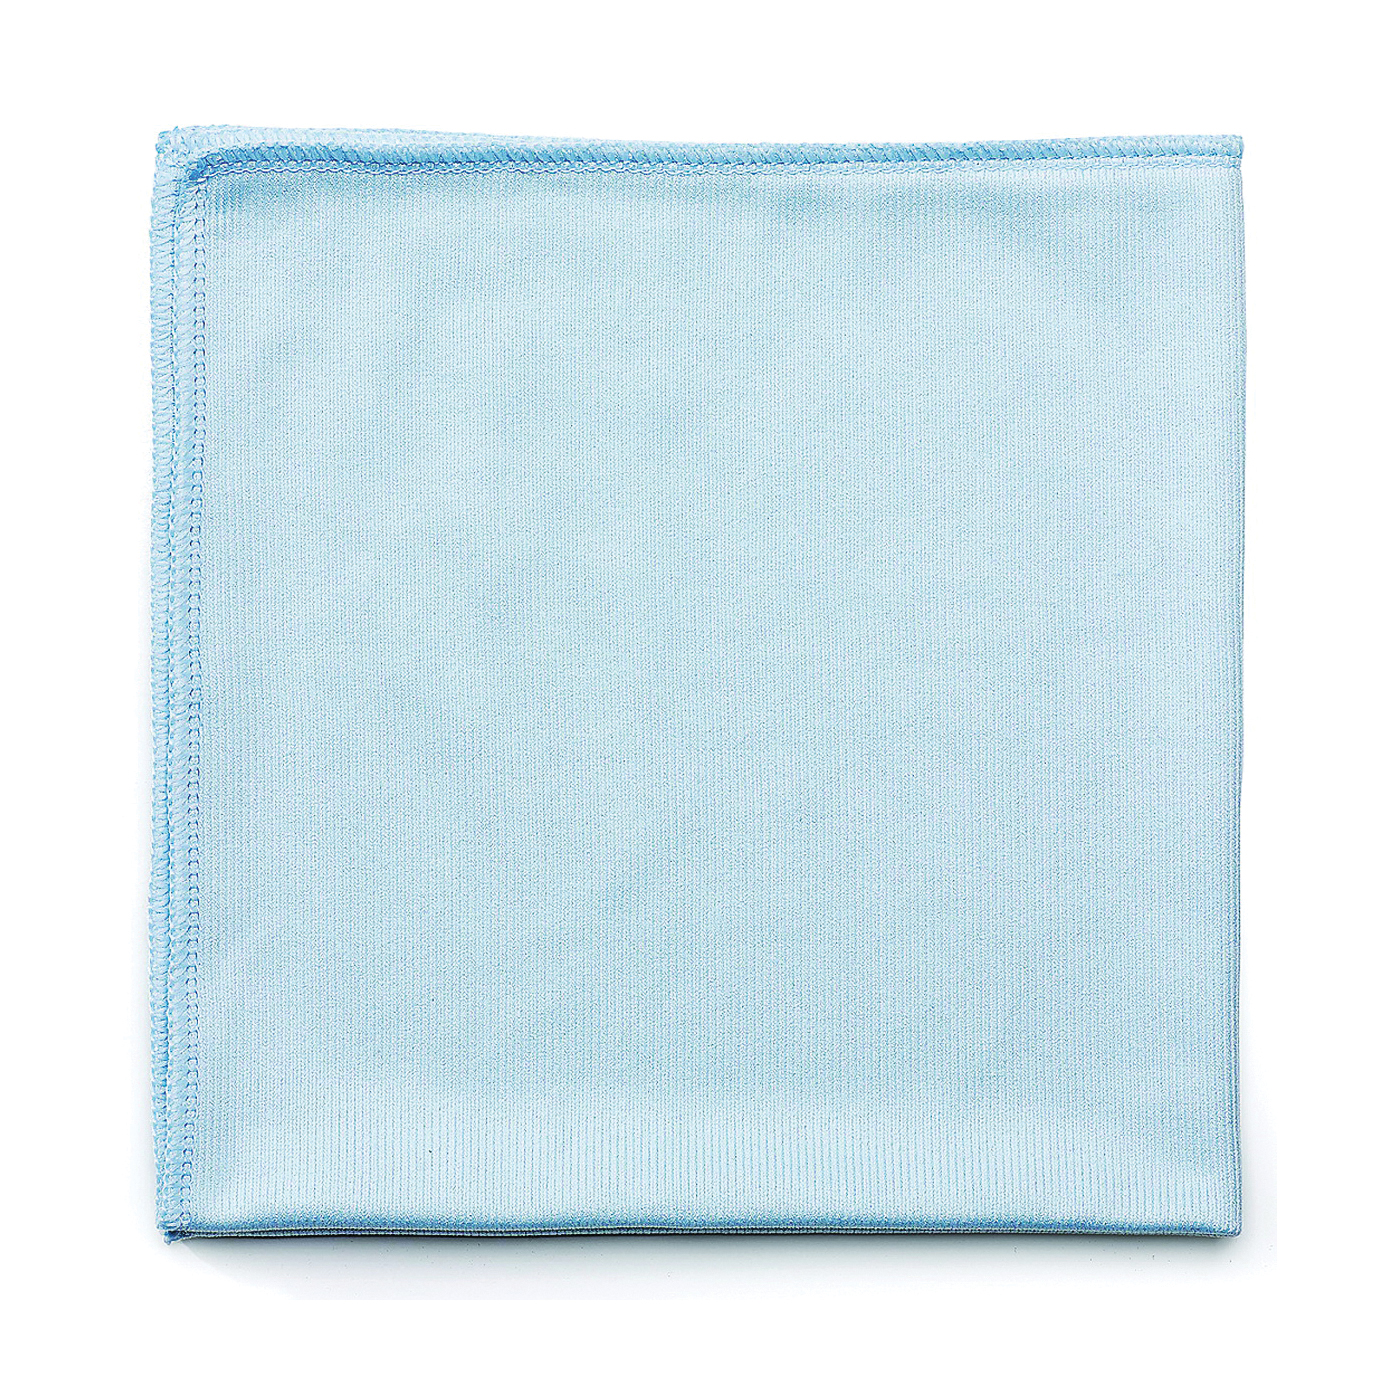 Picture of Rubbermaid Q63006BL00 Wiping Cloth, 16 in L, 16 in W, Microfiber Cloth